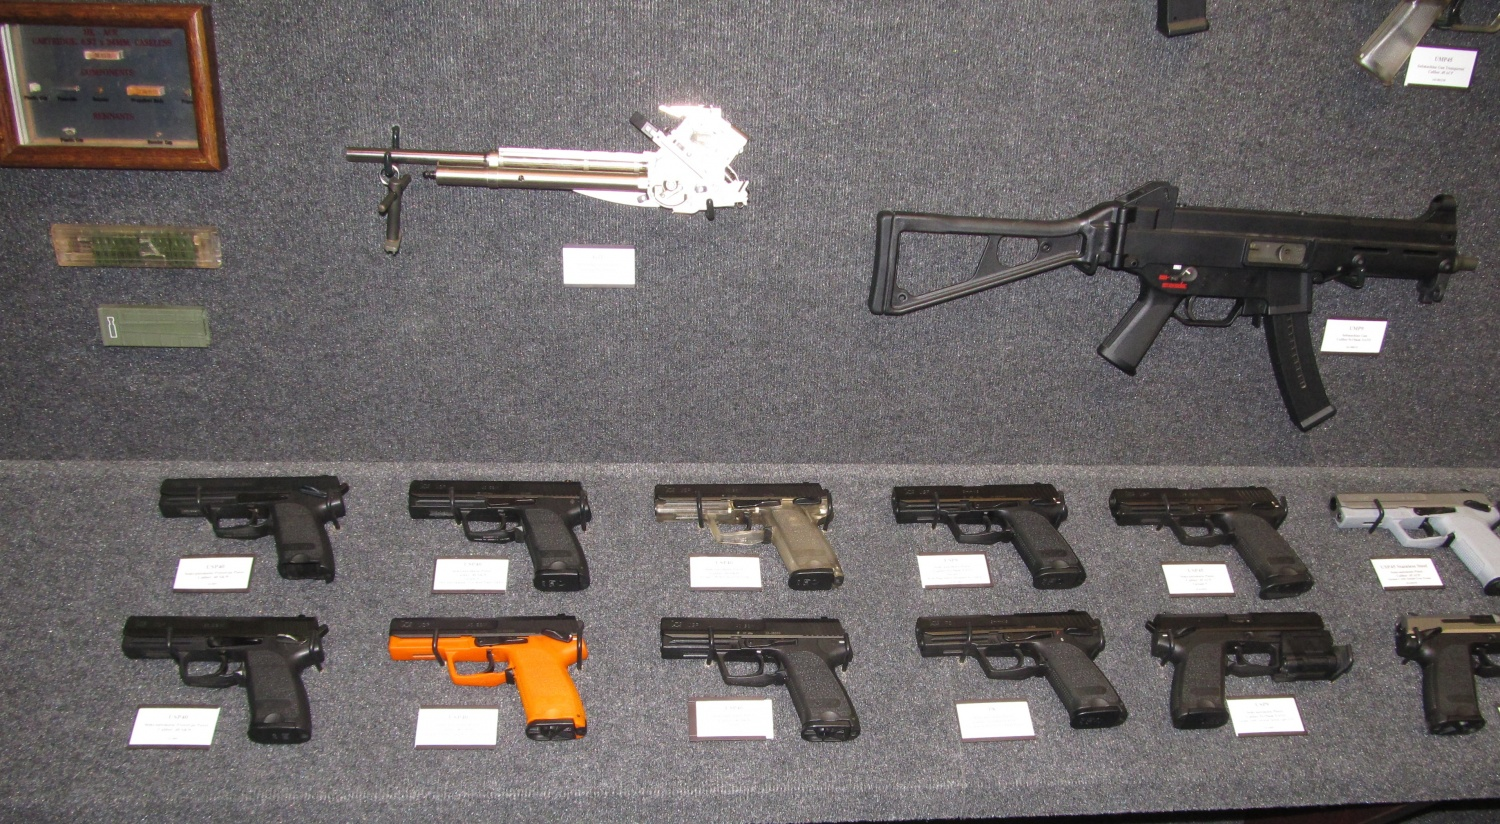 This is just half of the USP pistols on display, the other half includes some of the more modern variants such as the P30 and P2000s.